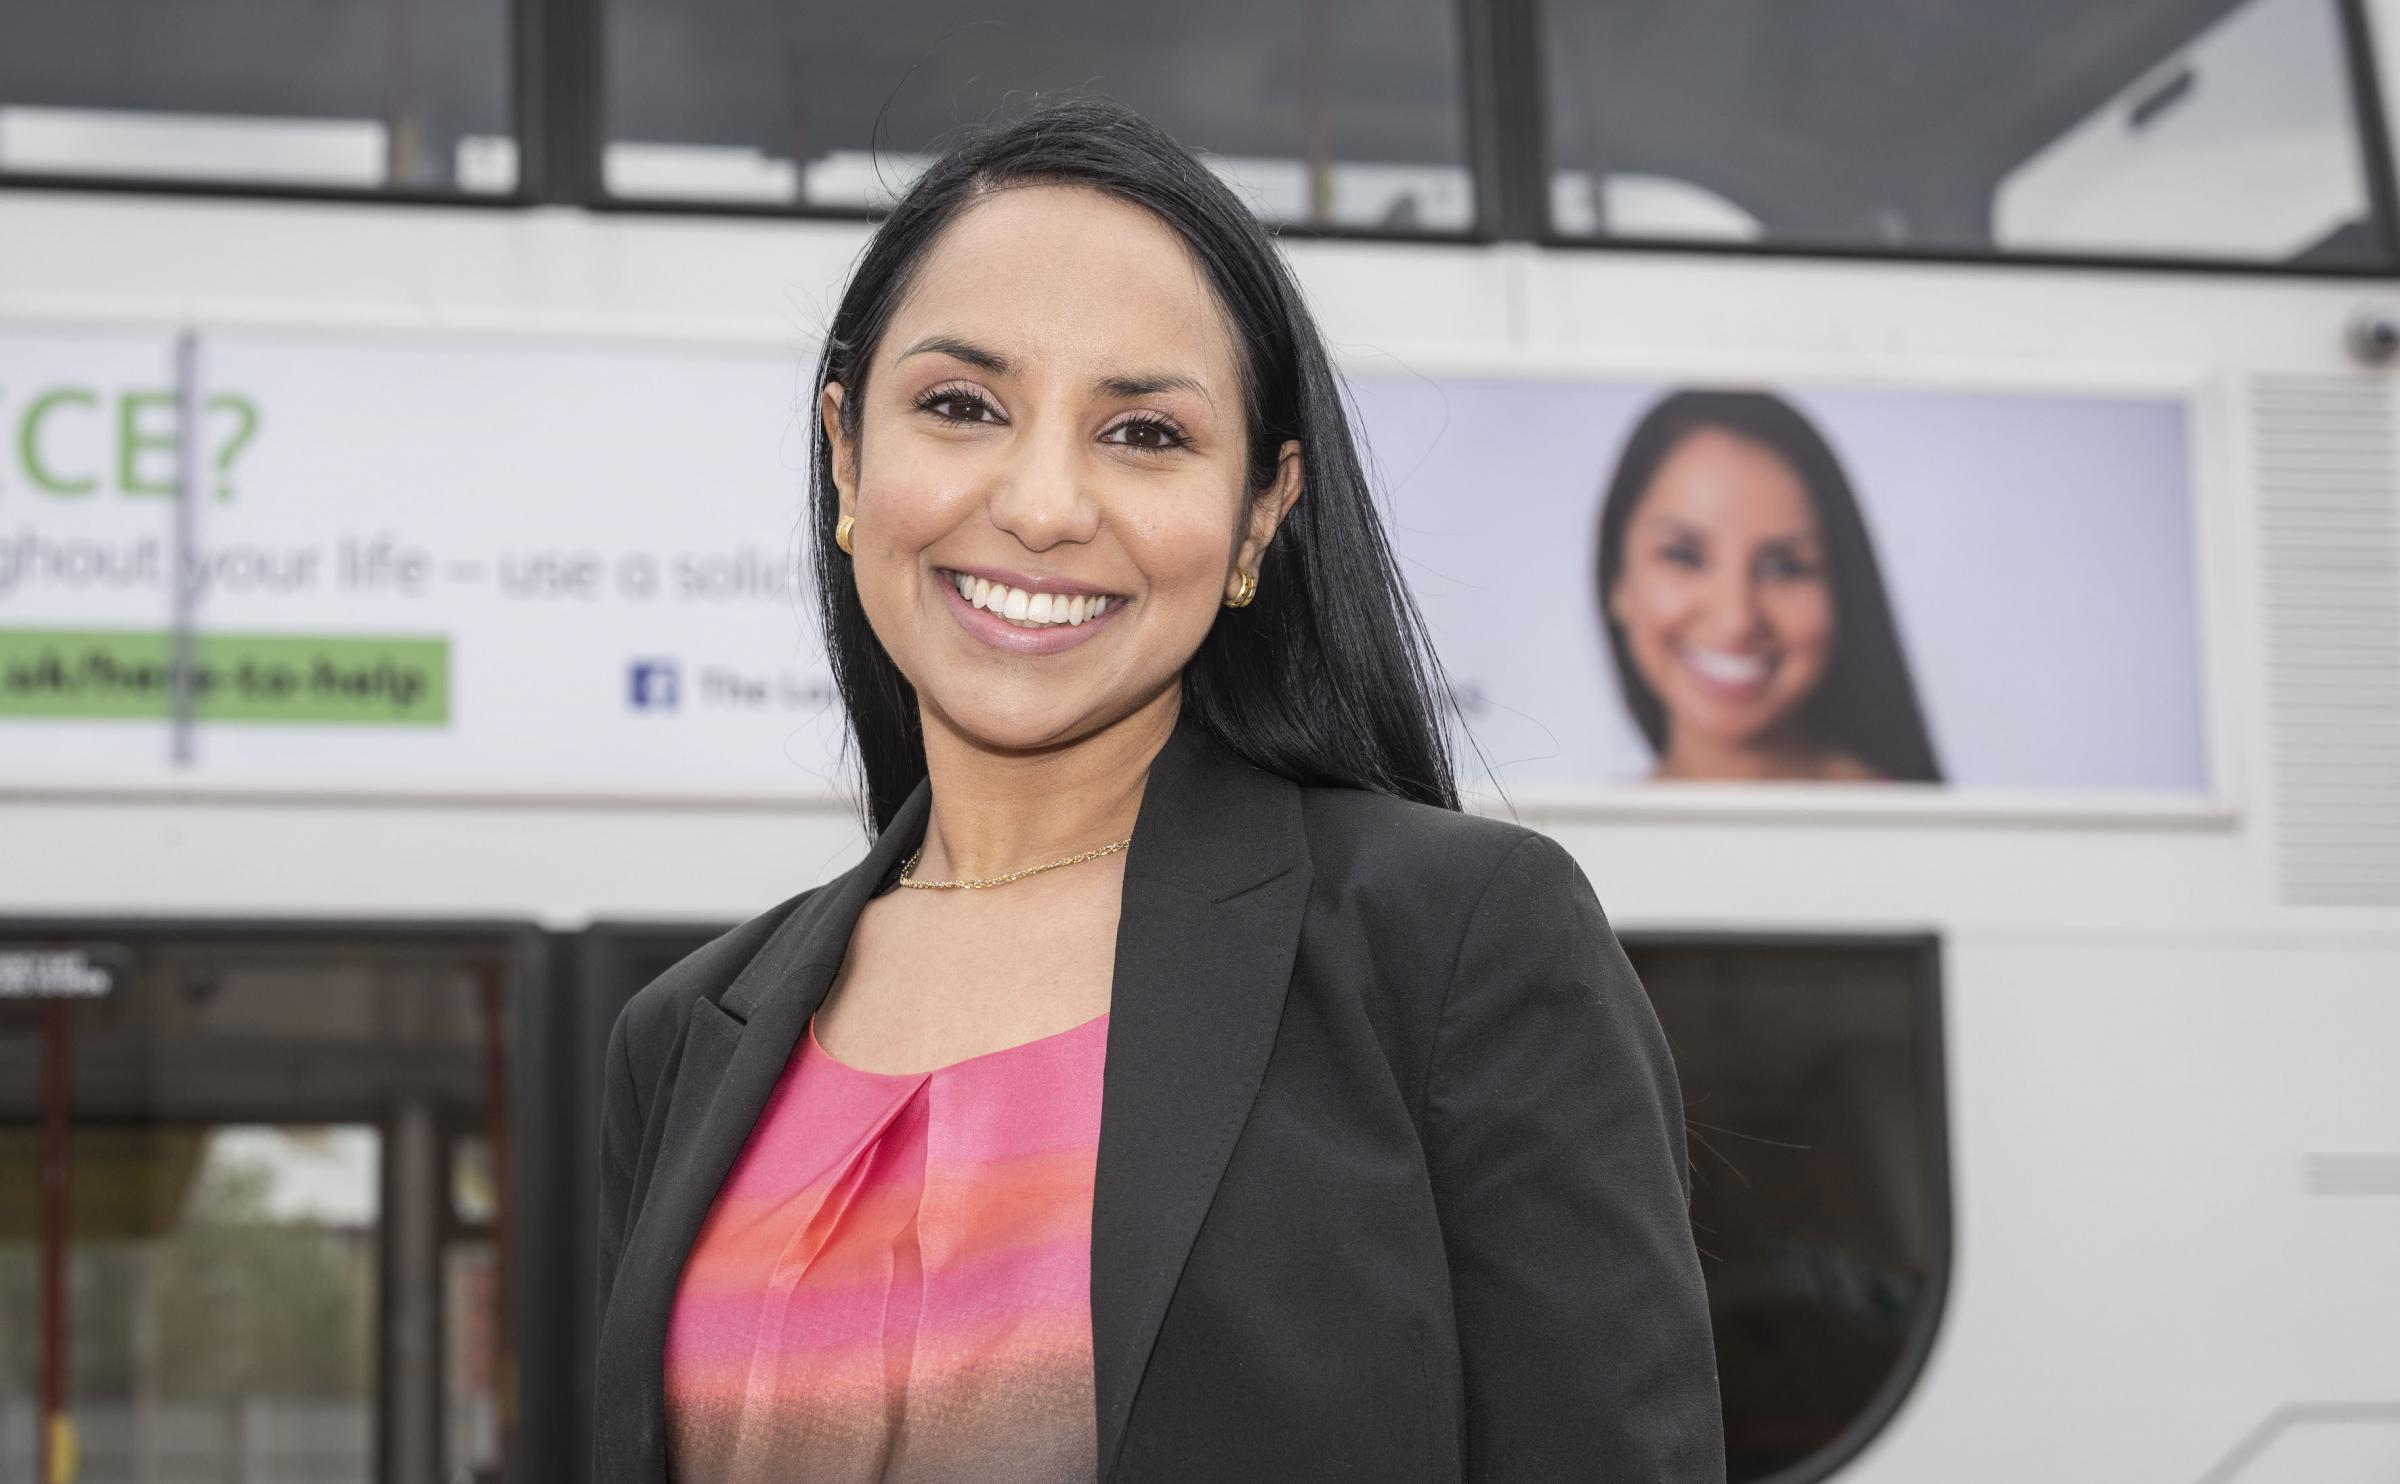 Solicitor Saira Tamboo is the new face of the campaign.